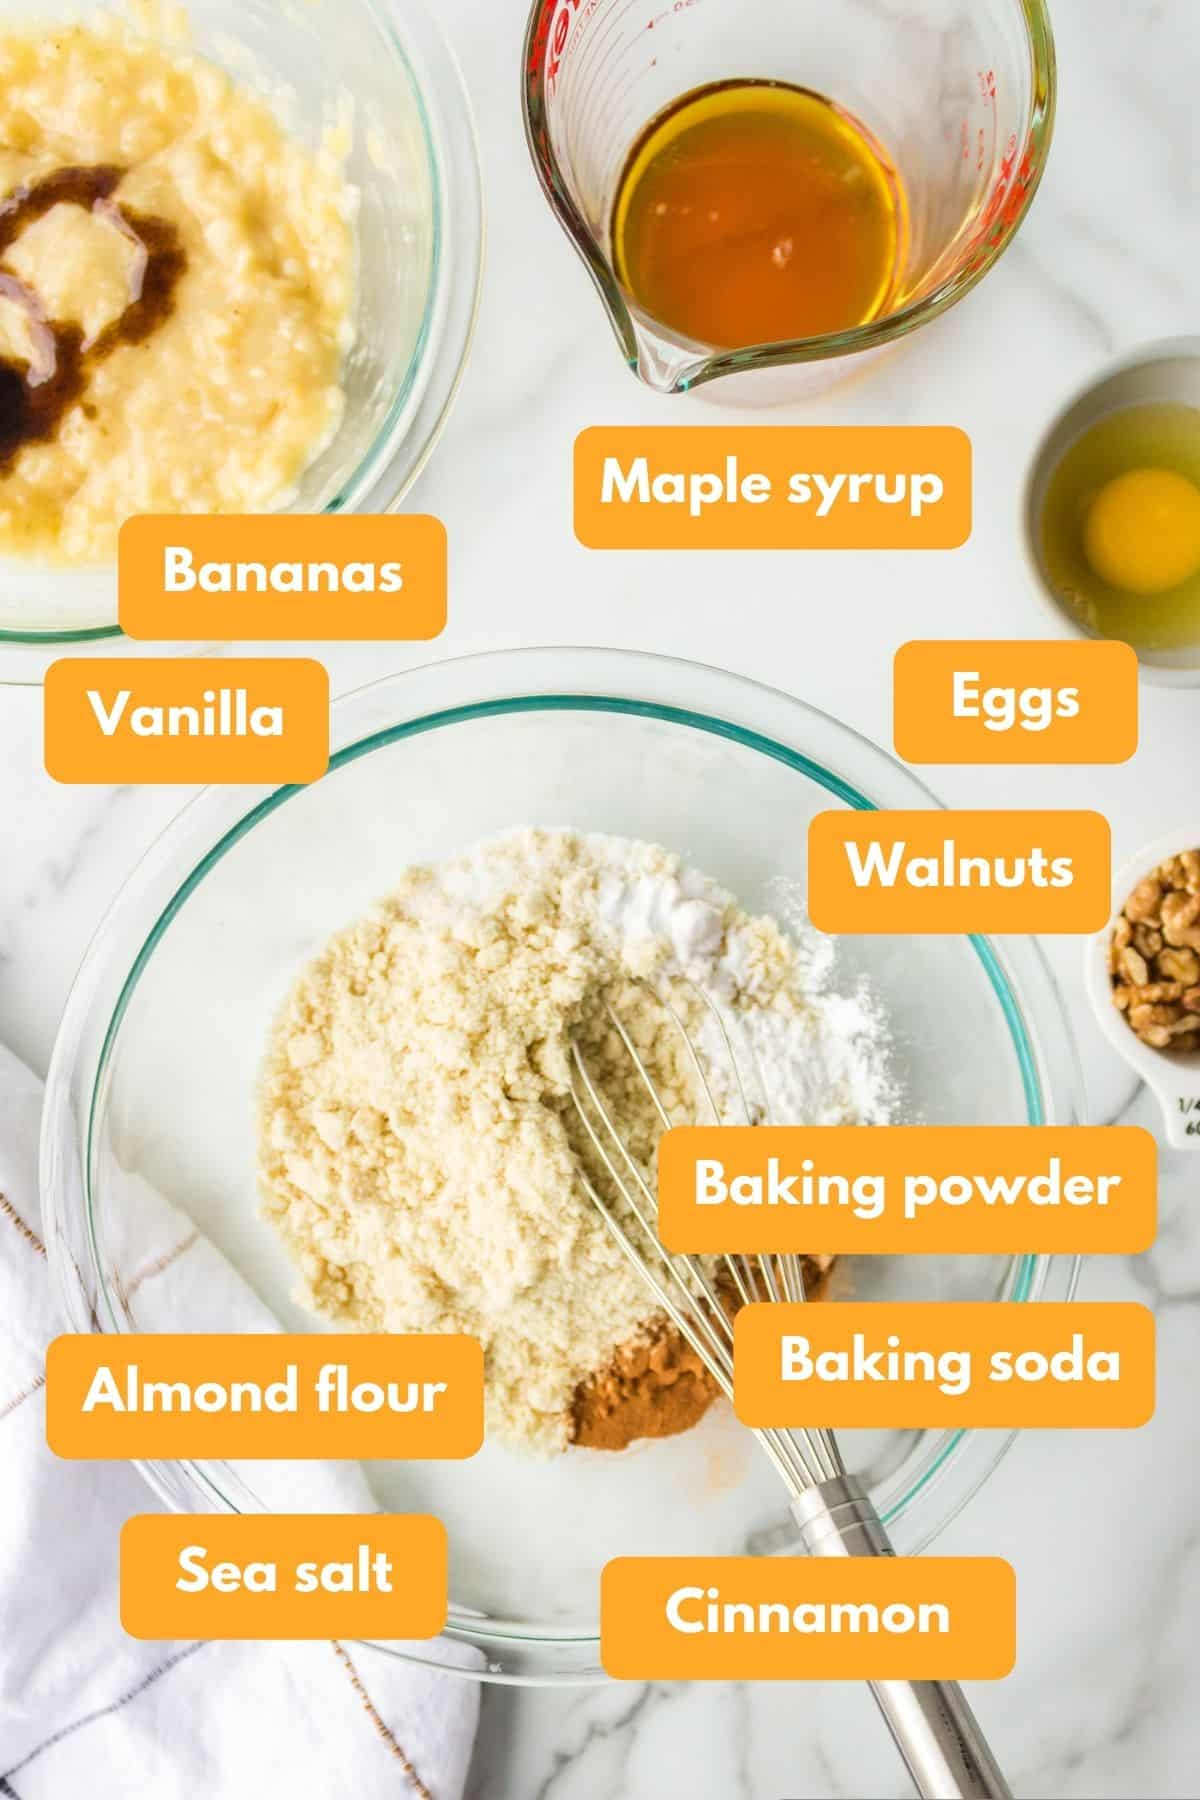 Ingredients for almond flour banana muffins